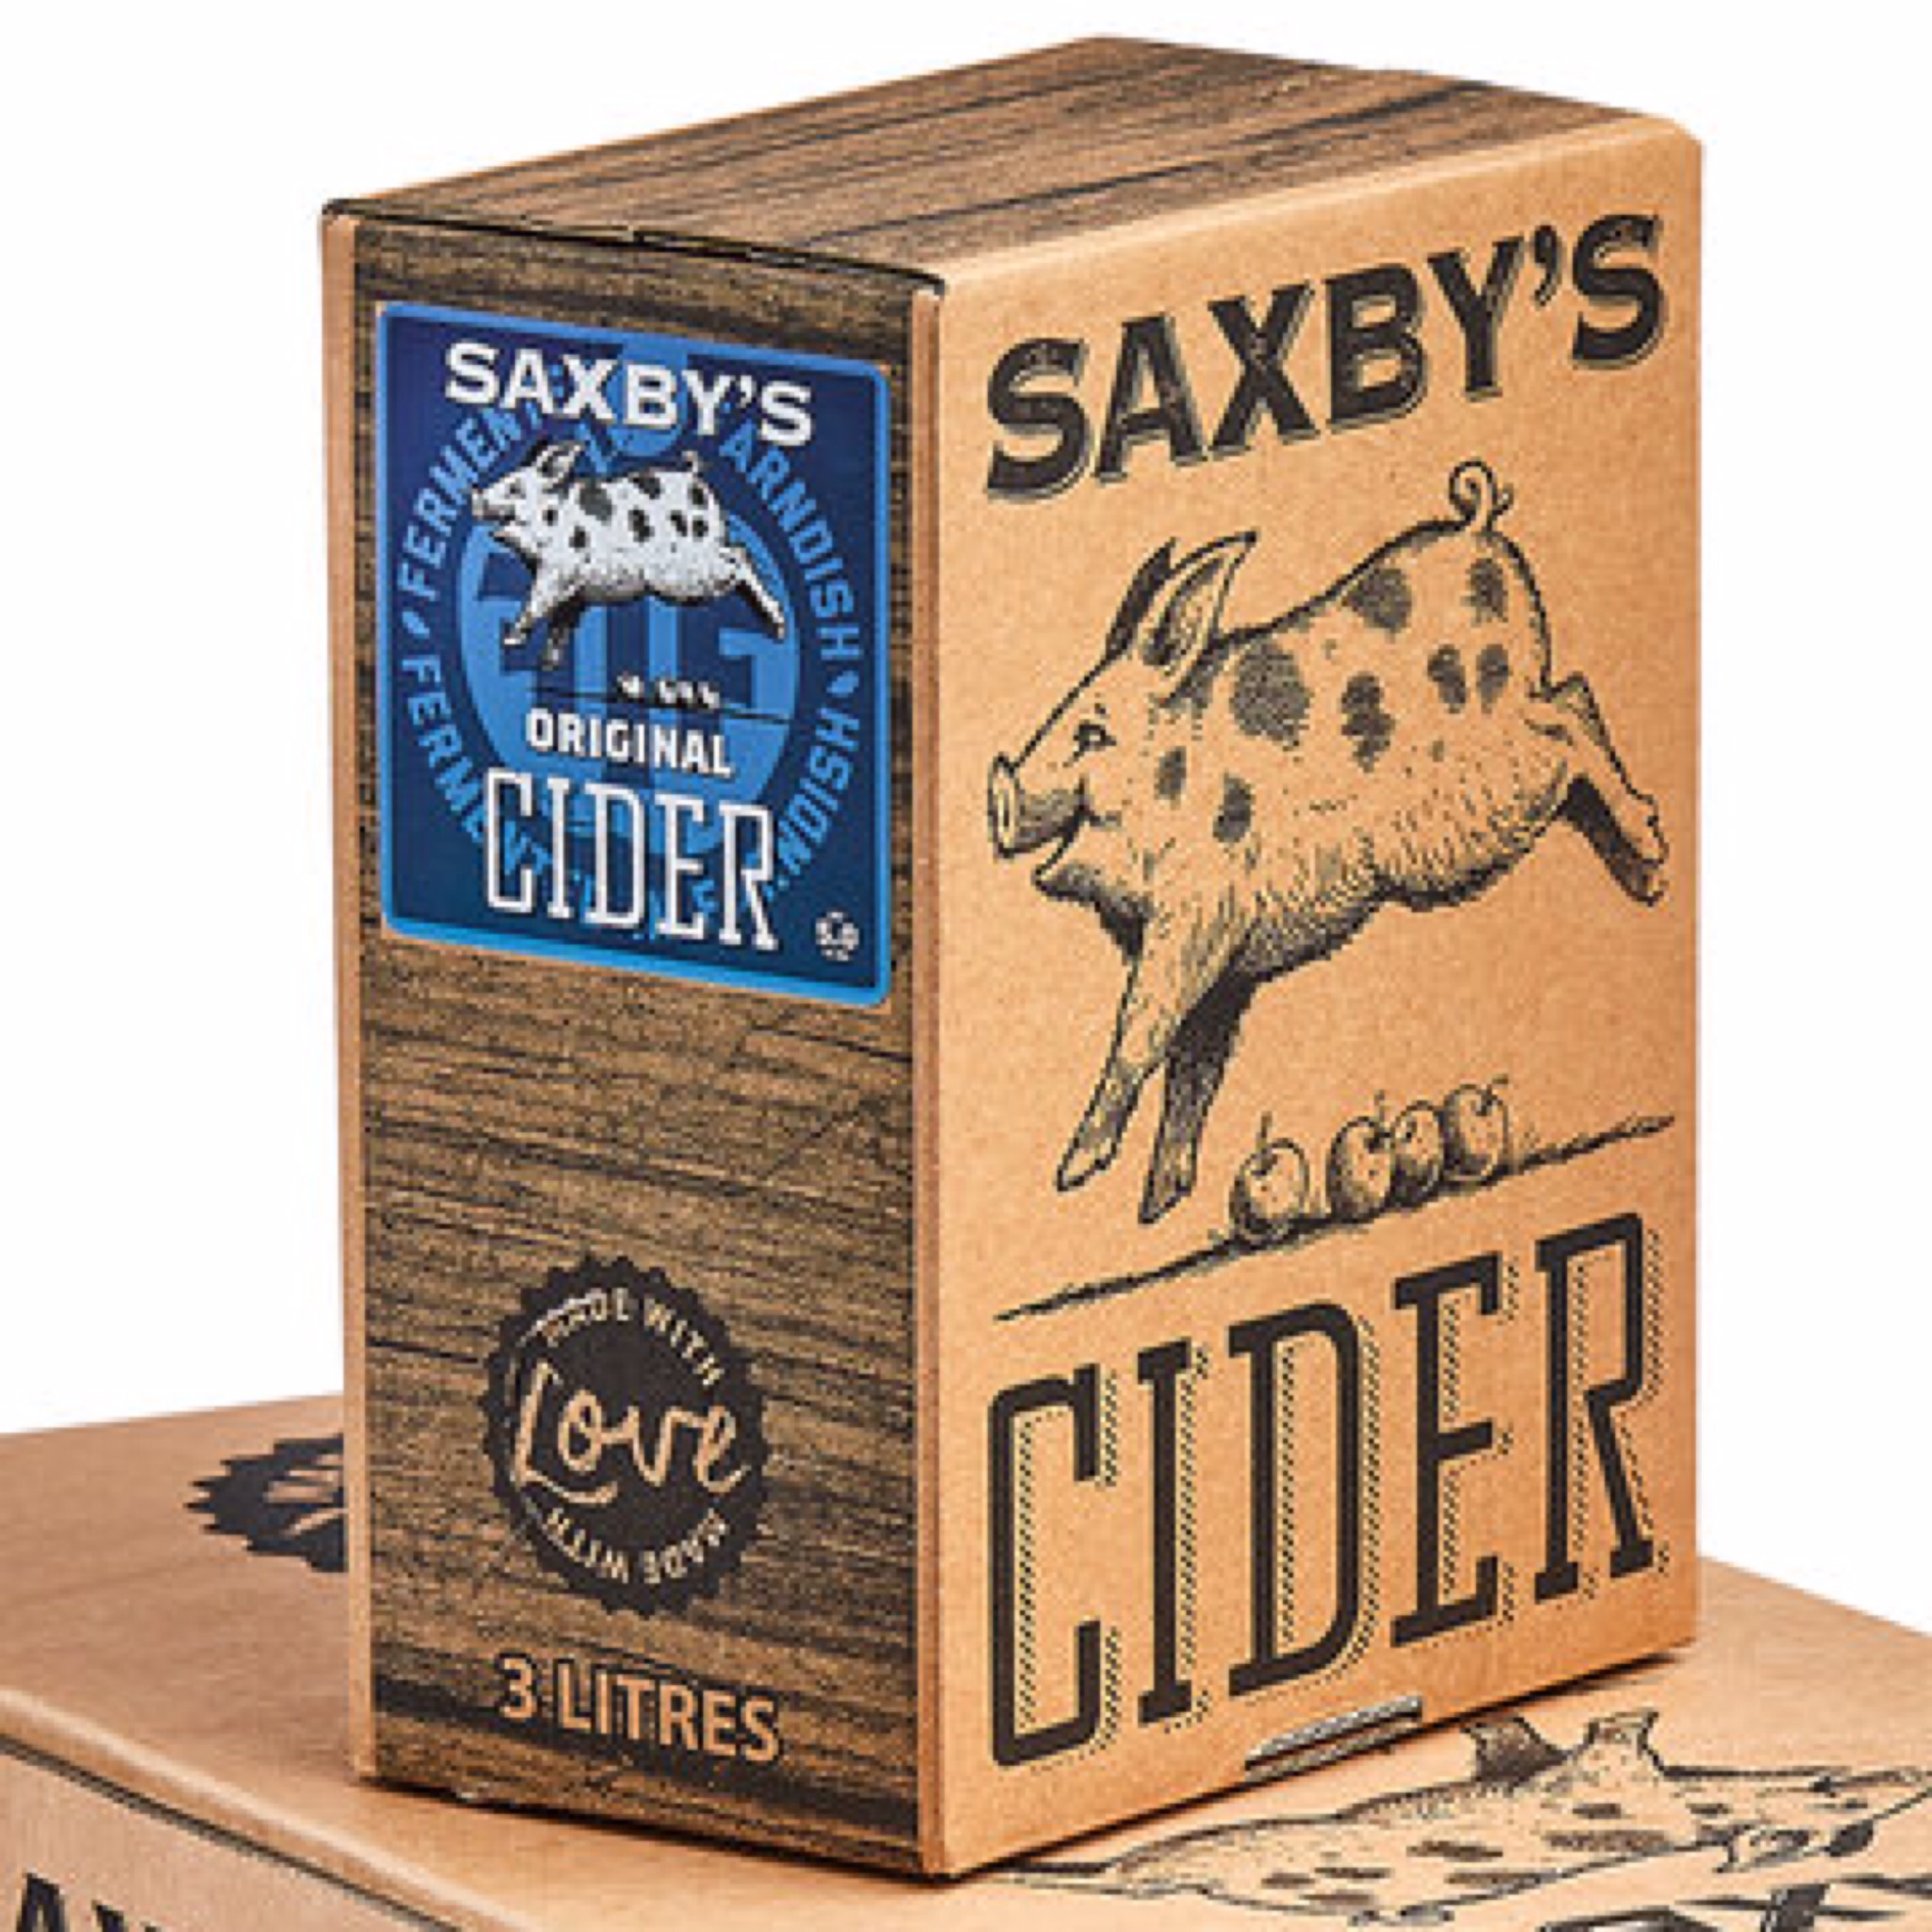 Saxby's Original Cider 5% 500ml & 3litre Bag In The Box